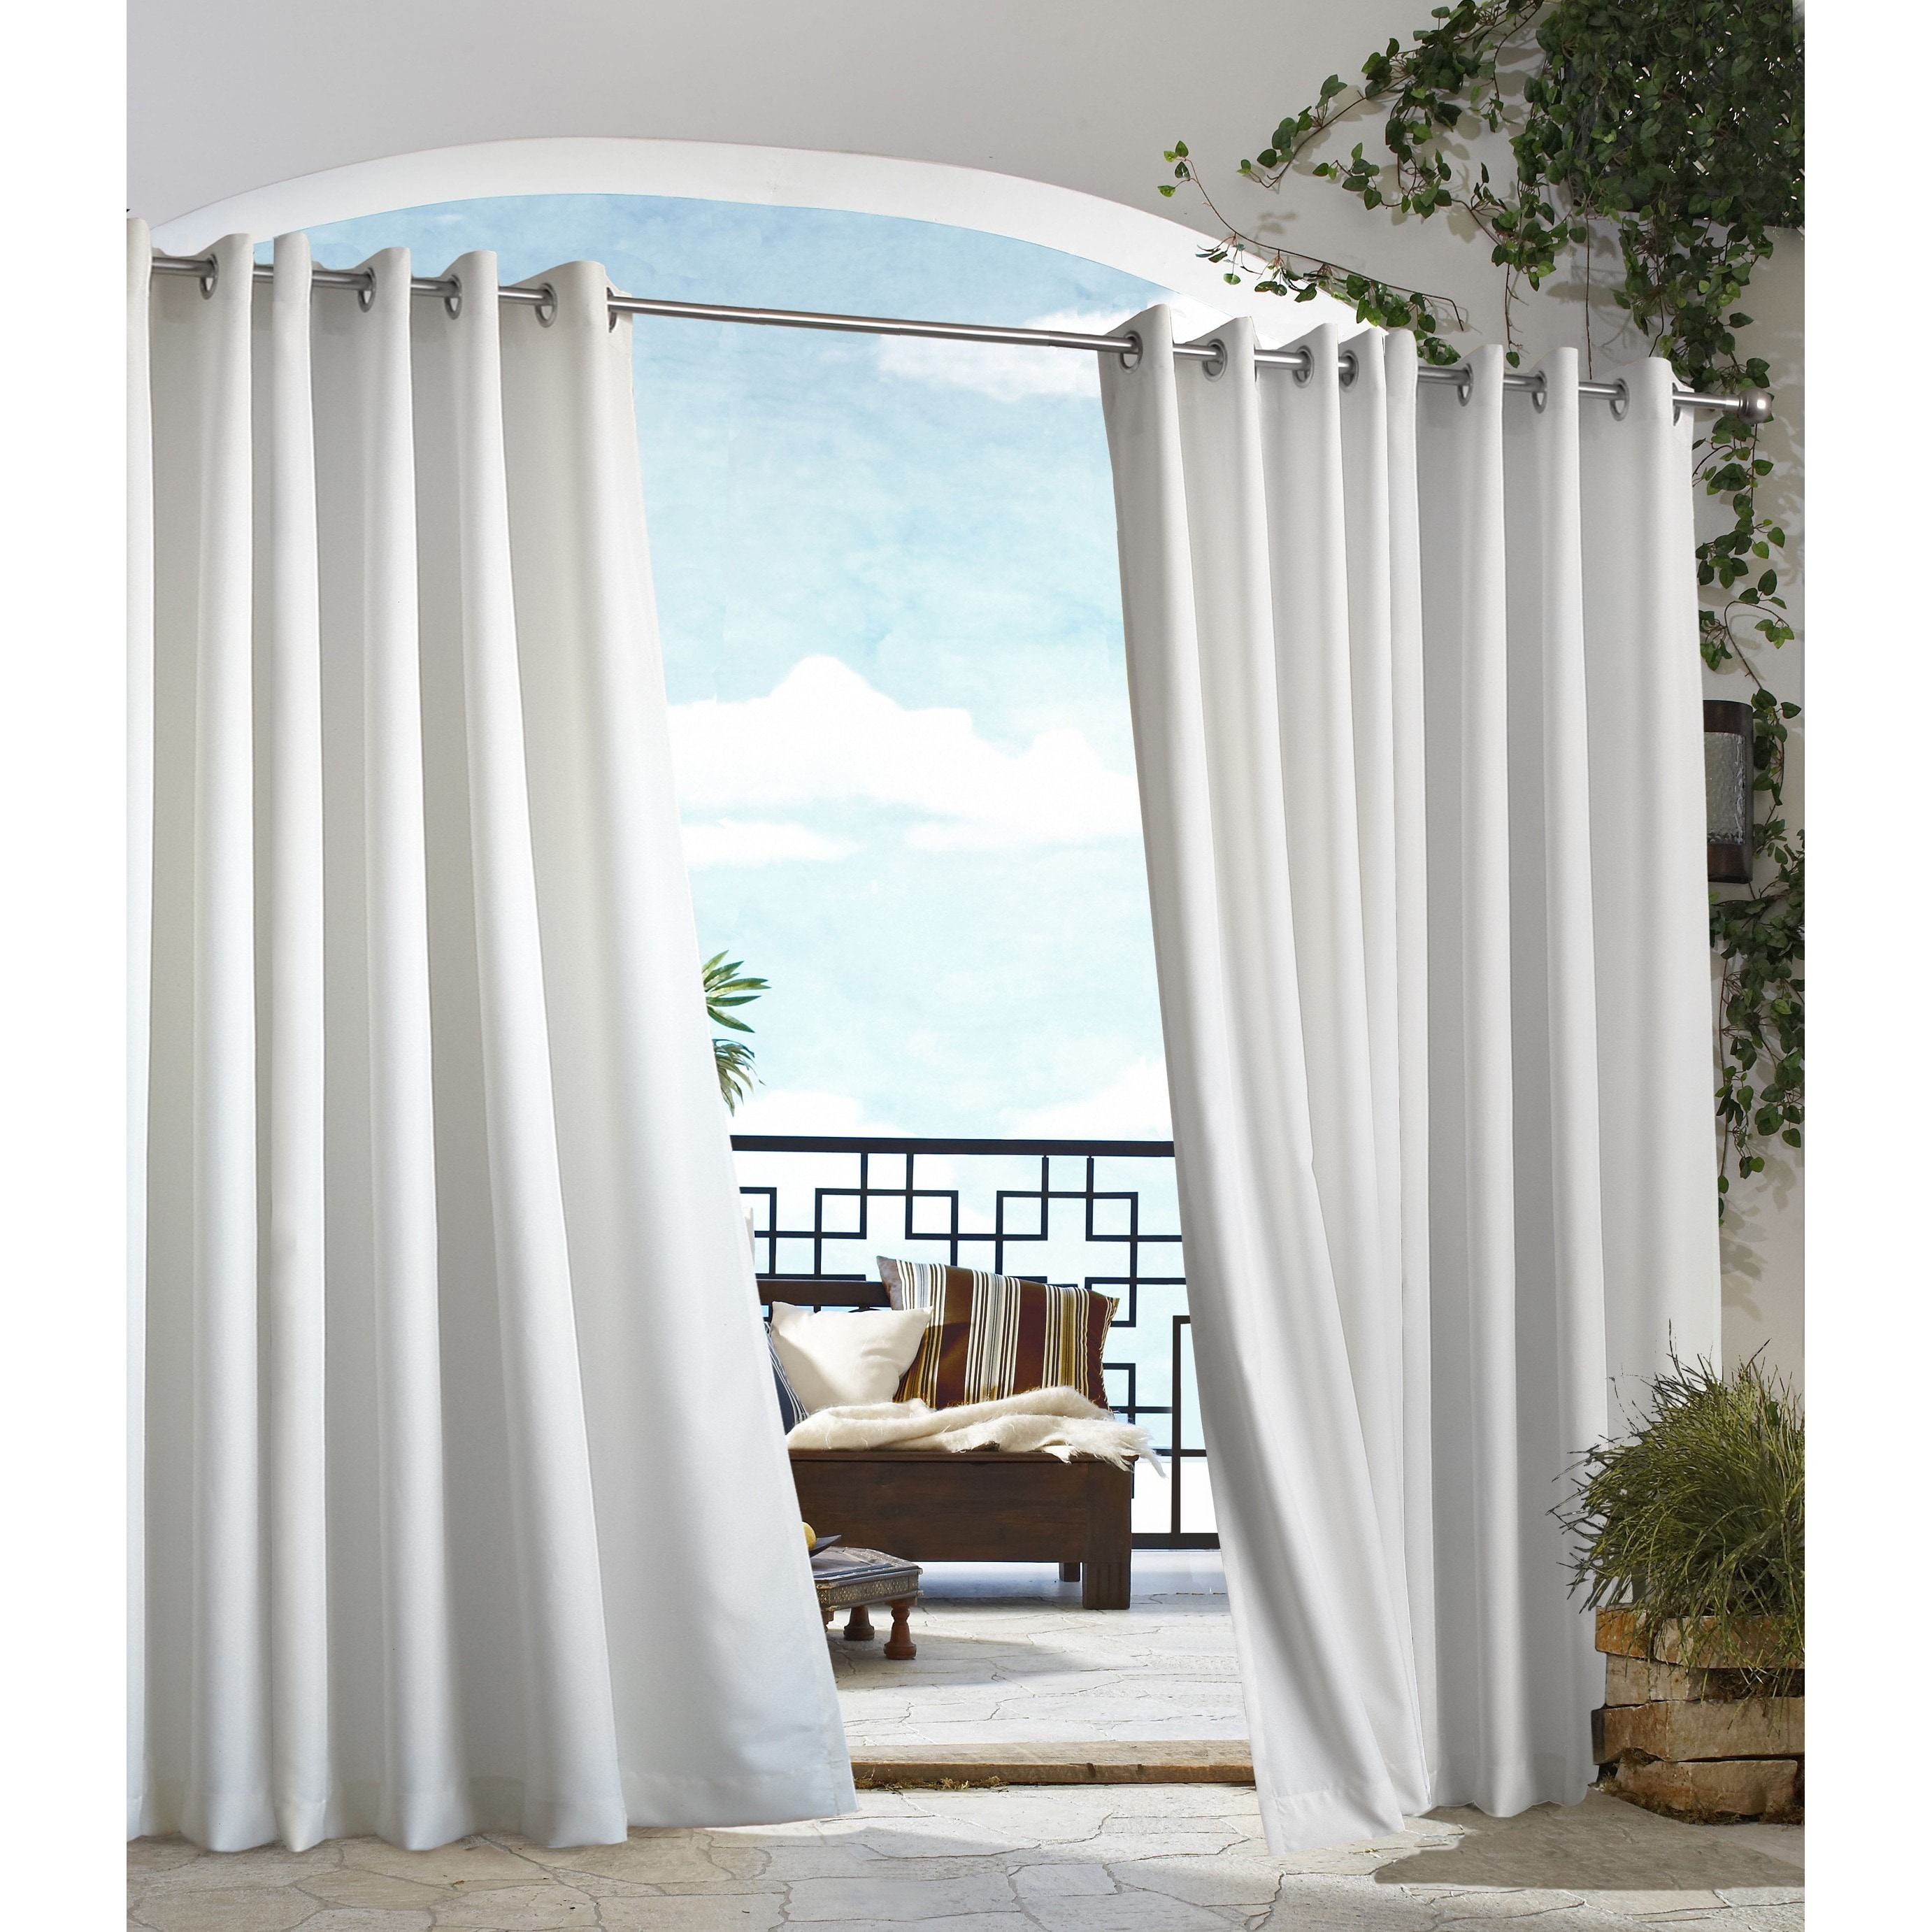 formidable to in curtains for hang on size patio inspirations of cheap gazebo outdoor how curtain image full